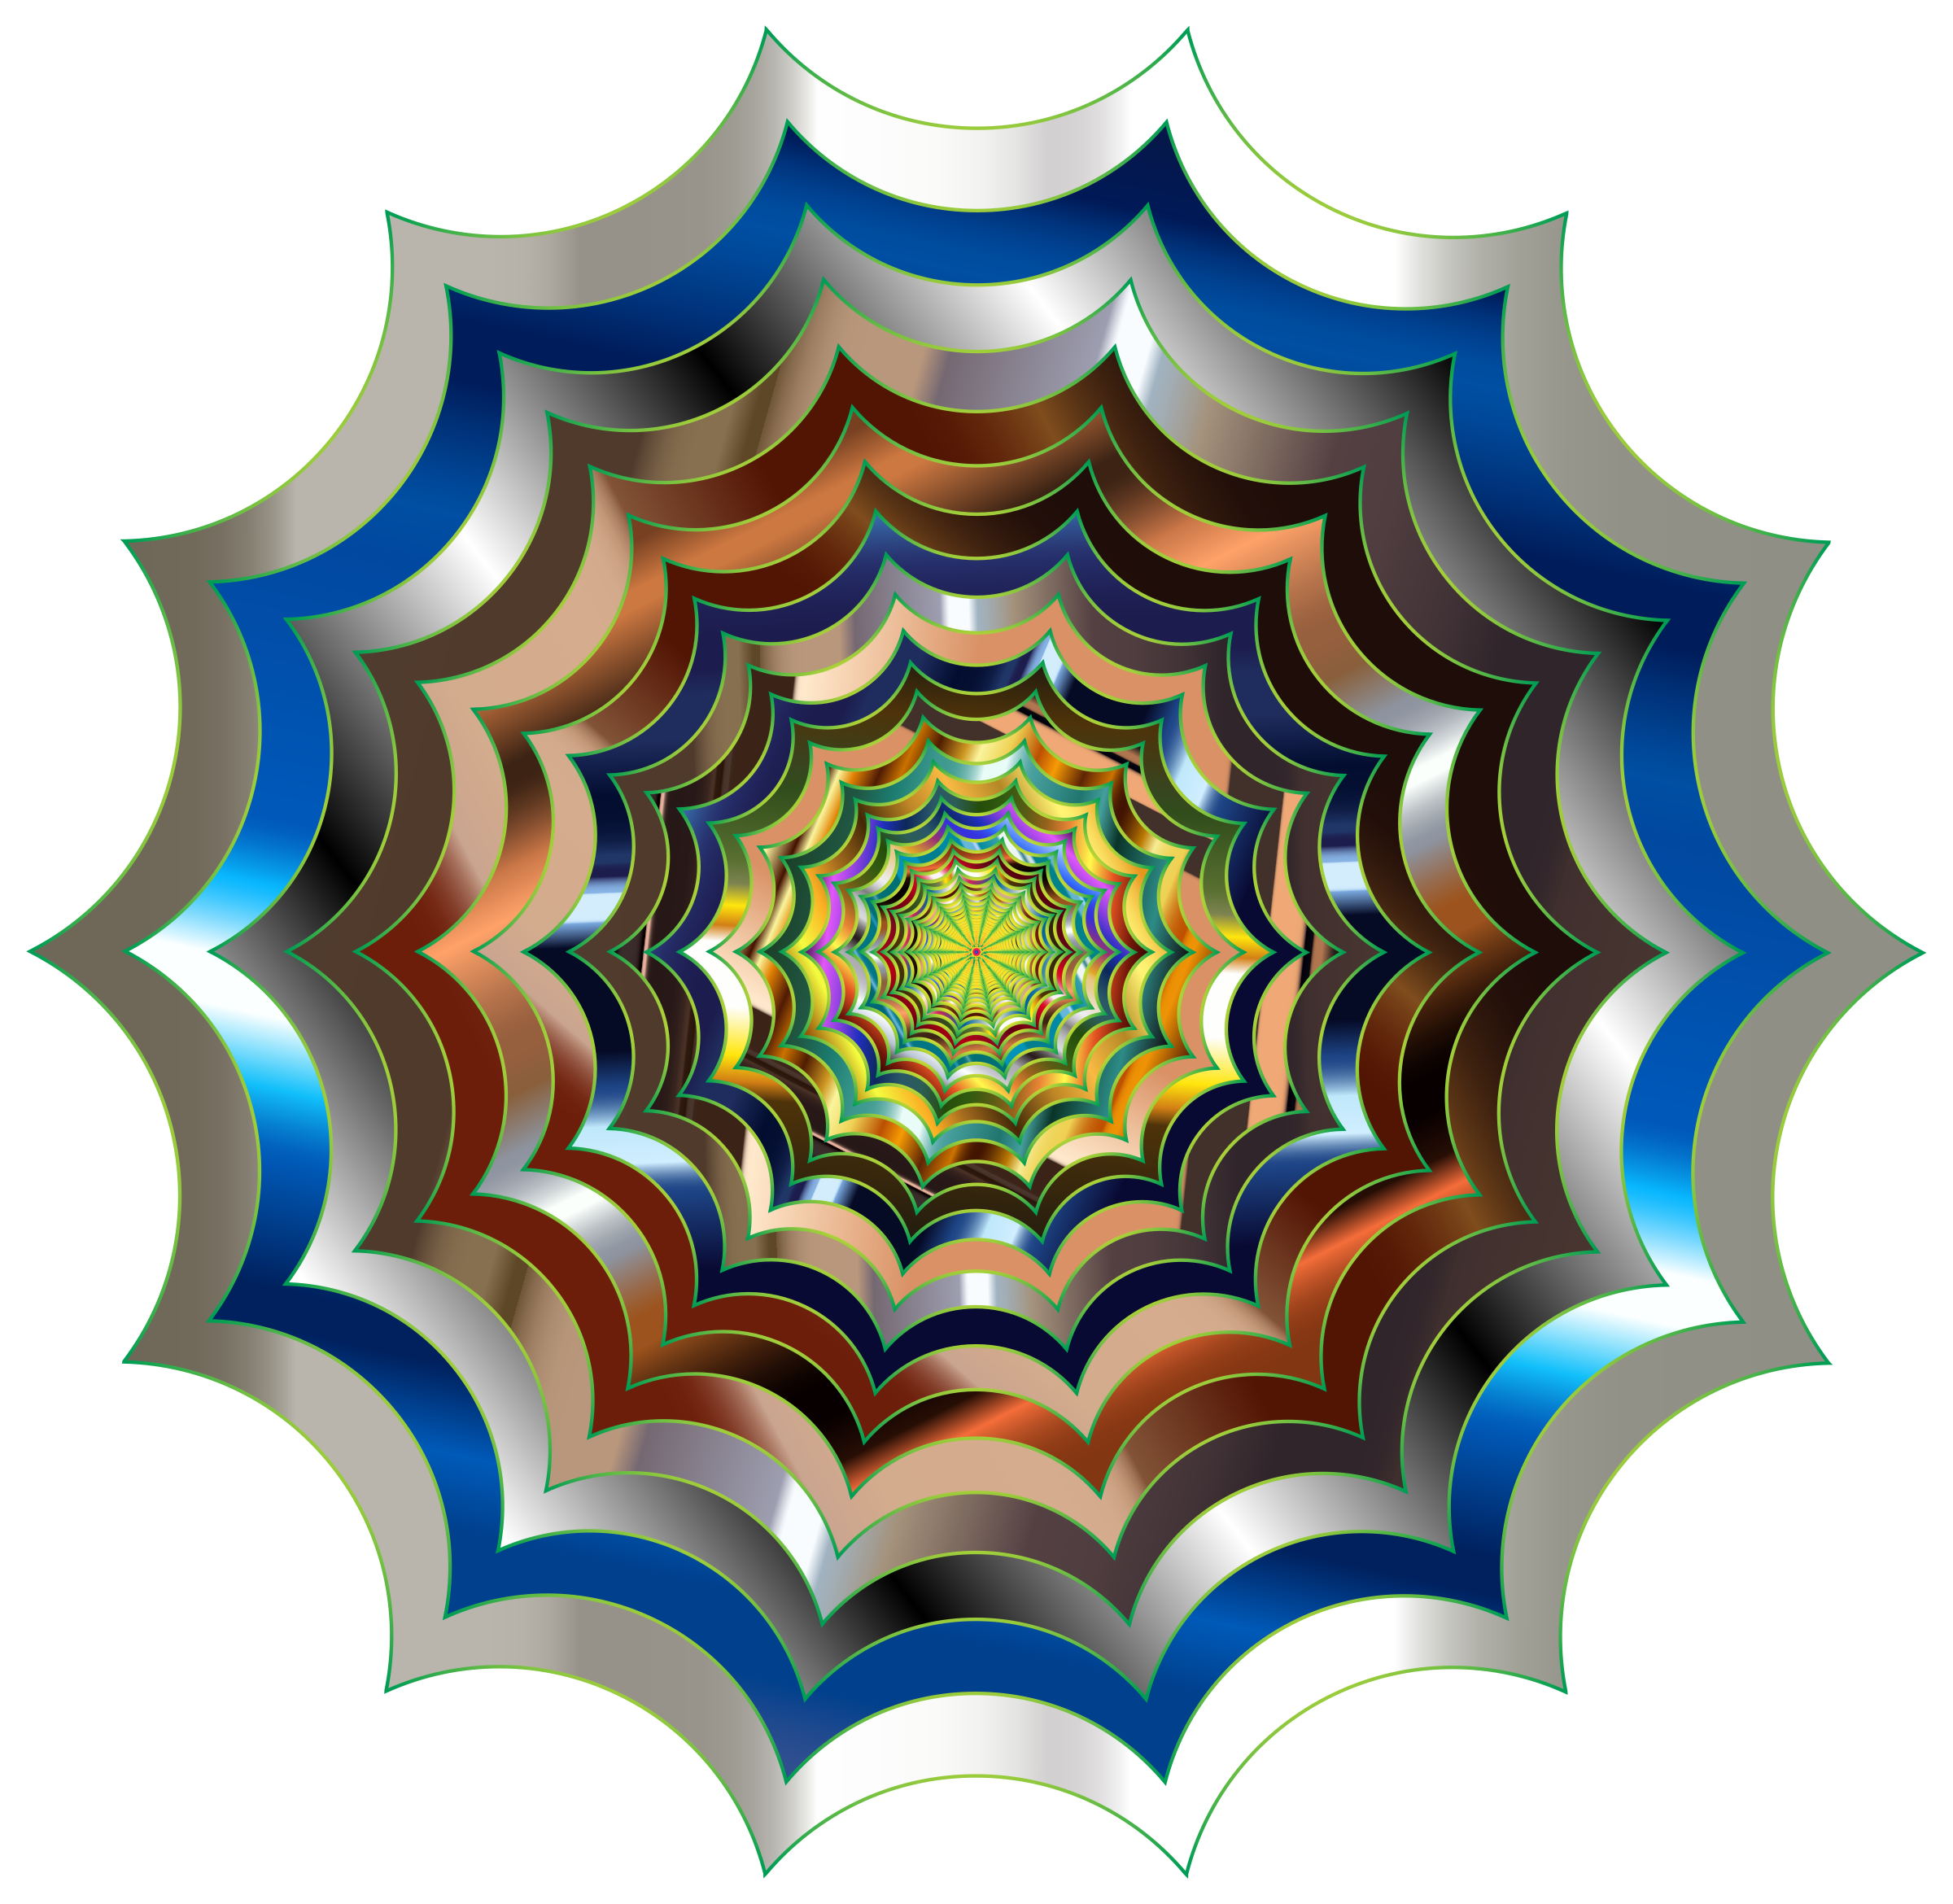 Spider Web Hypnotic Revitalized 3 by GDJ